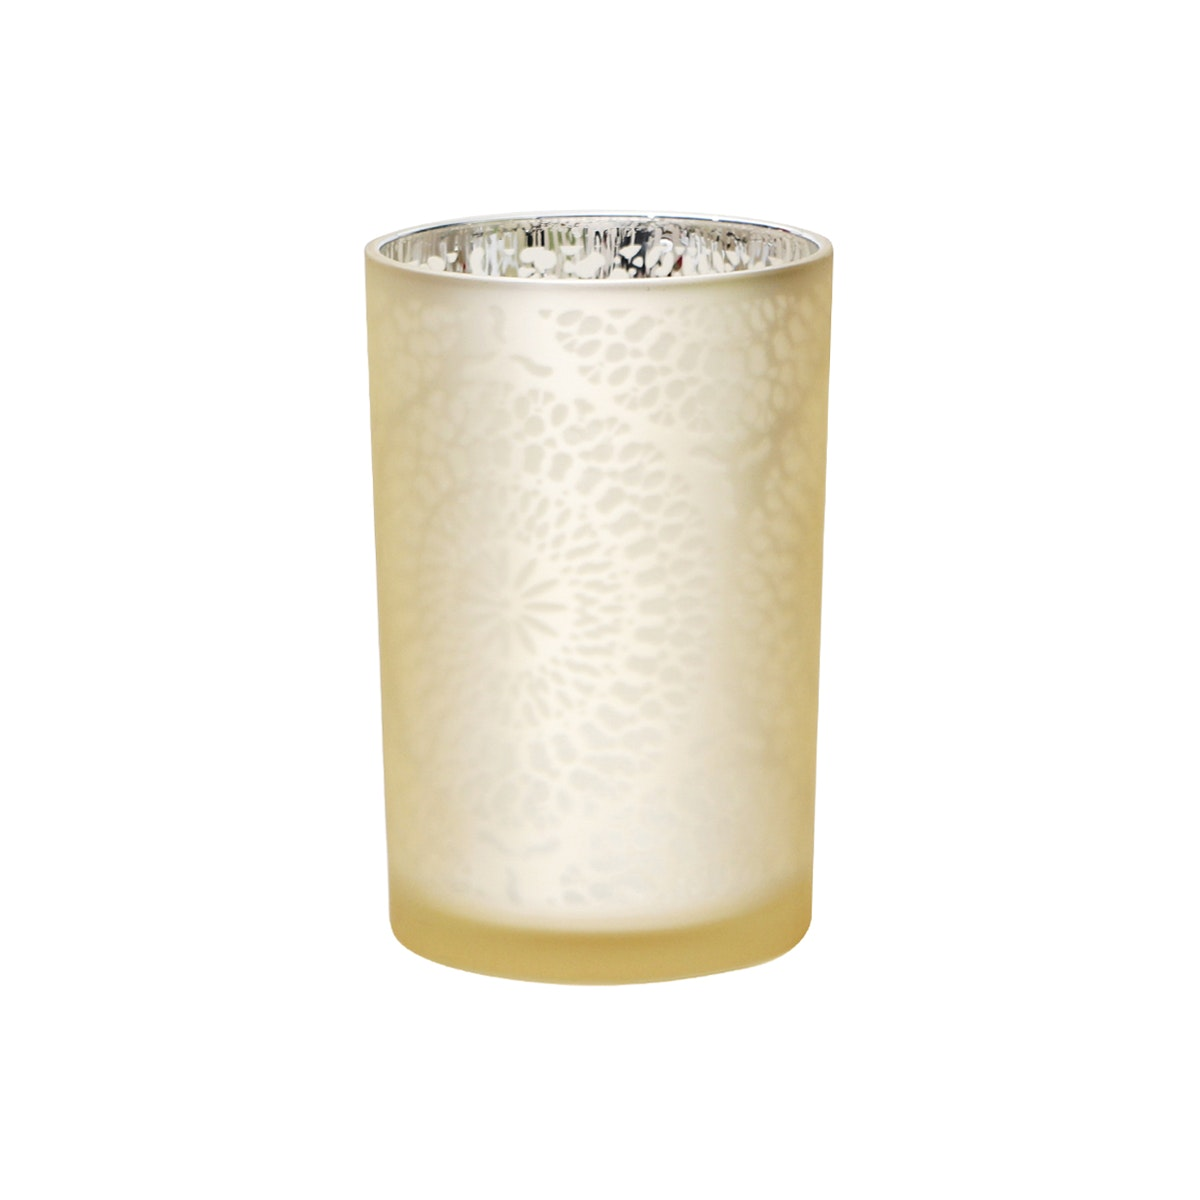 Vivere Hurricane Candle Holder Round Lace Gold 12x18 cm